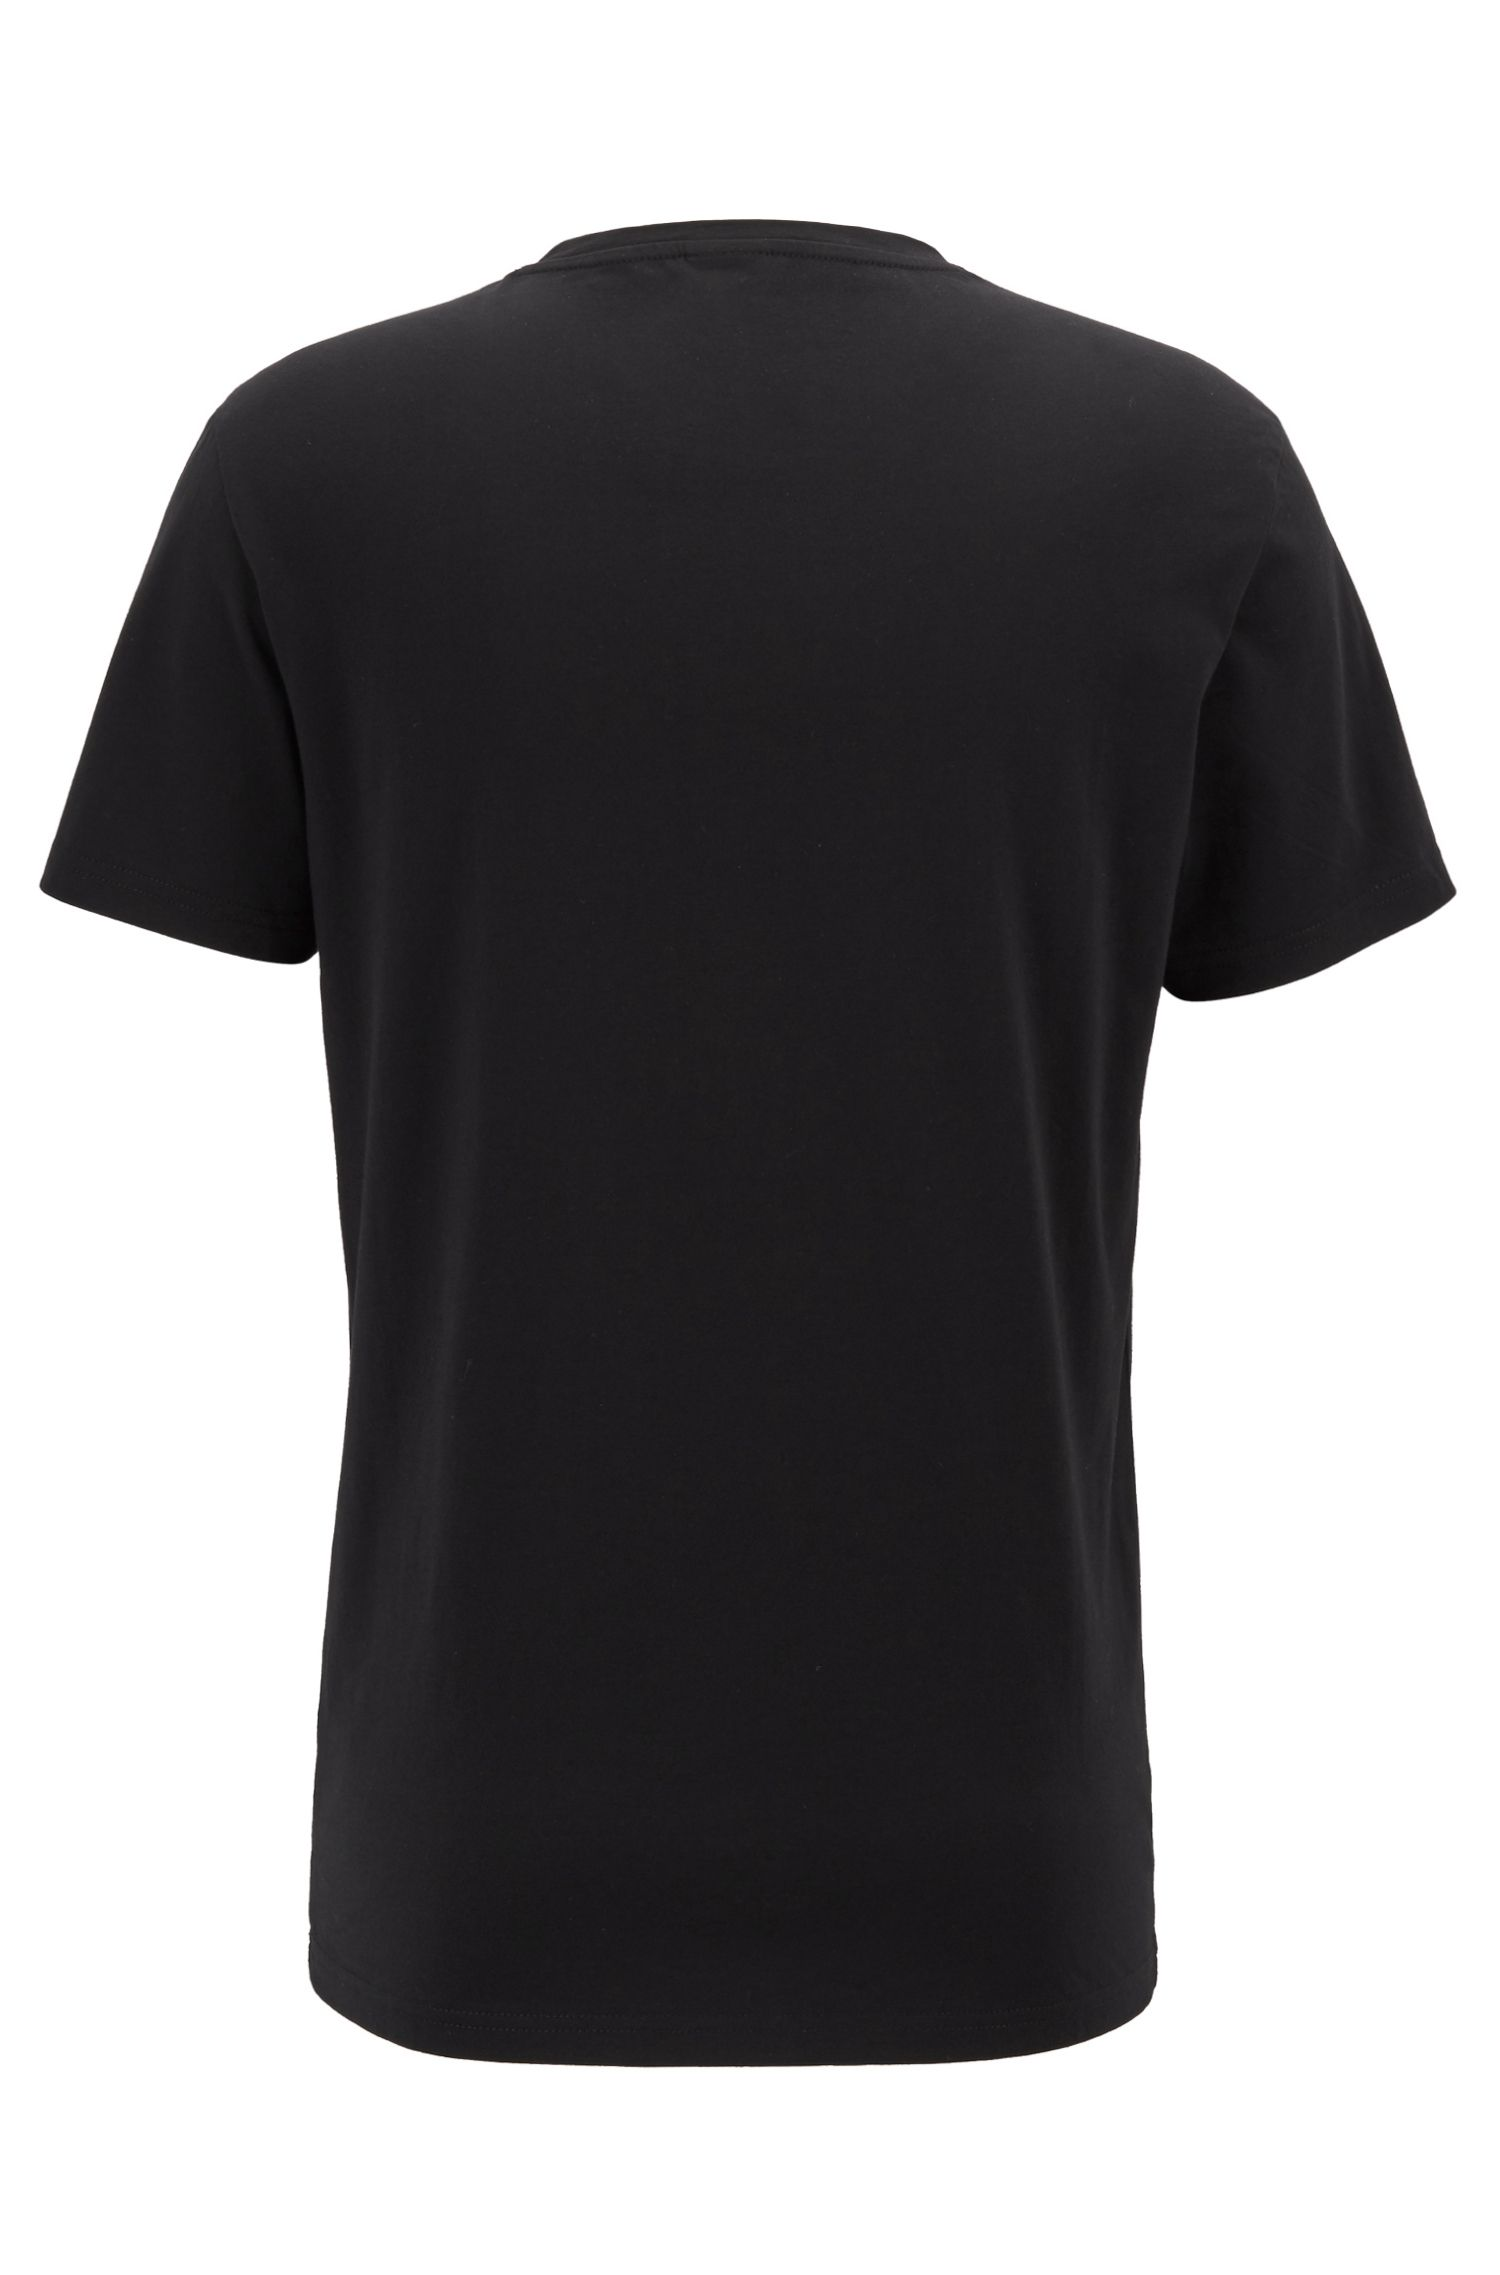 Relaxed-fit UPF 50+ T-shirt in responsibly sourced cotton, Black